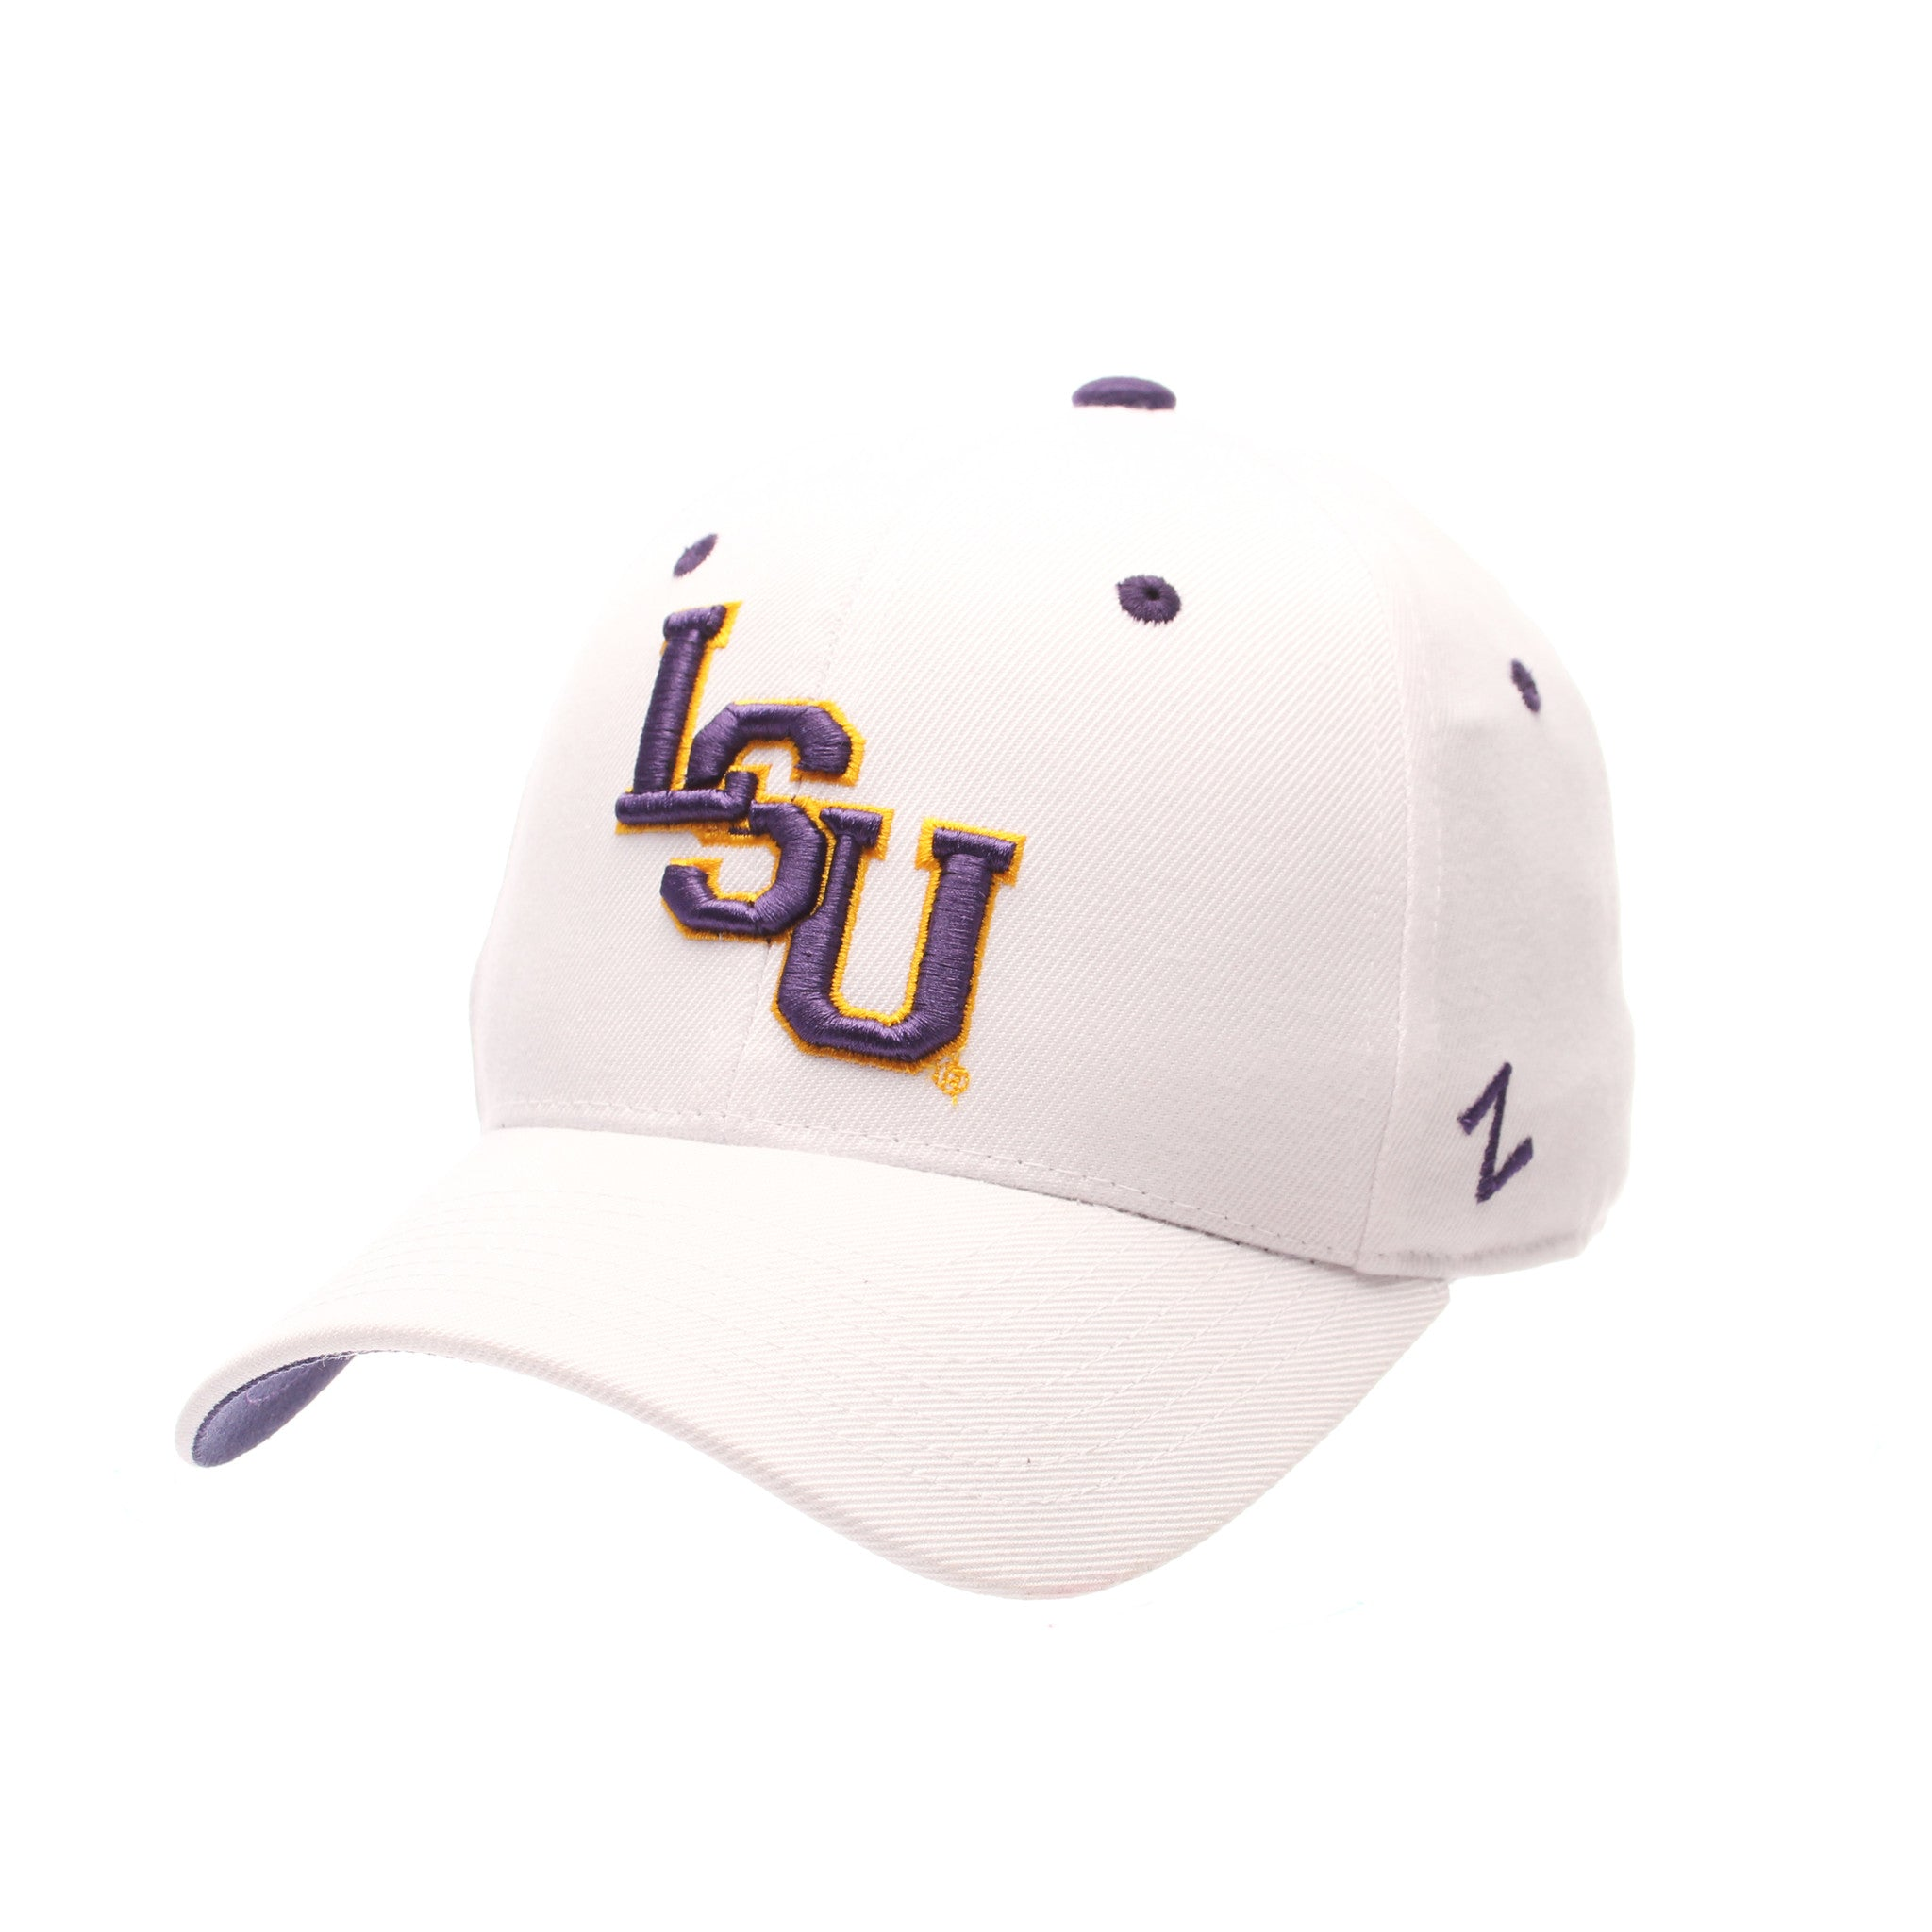 Louisiana State University (LSU) DH Standard (Low) (LSU) White Zwool Fitted hats by Zephyr